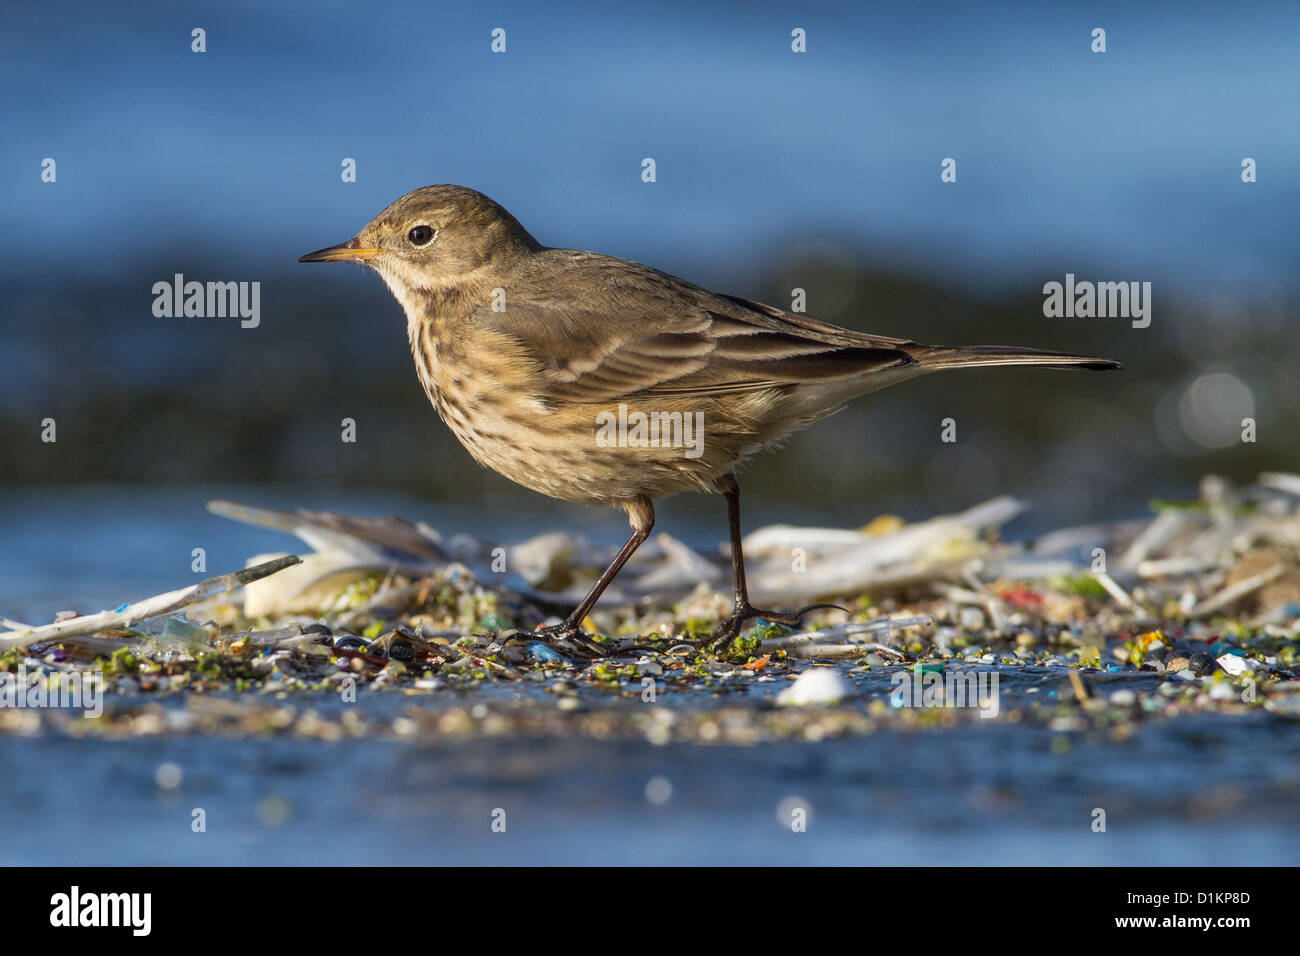 American Buff-bellied Pipit (Anthus rubescens), Queen Mother Reservoir, Berkshire, England - Stock Image